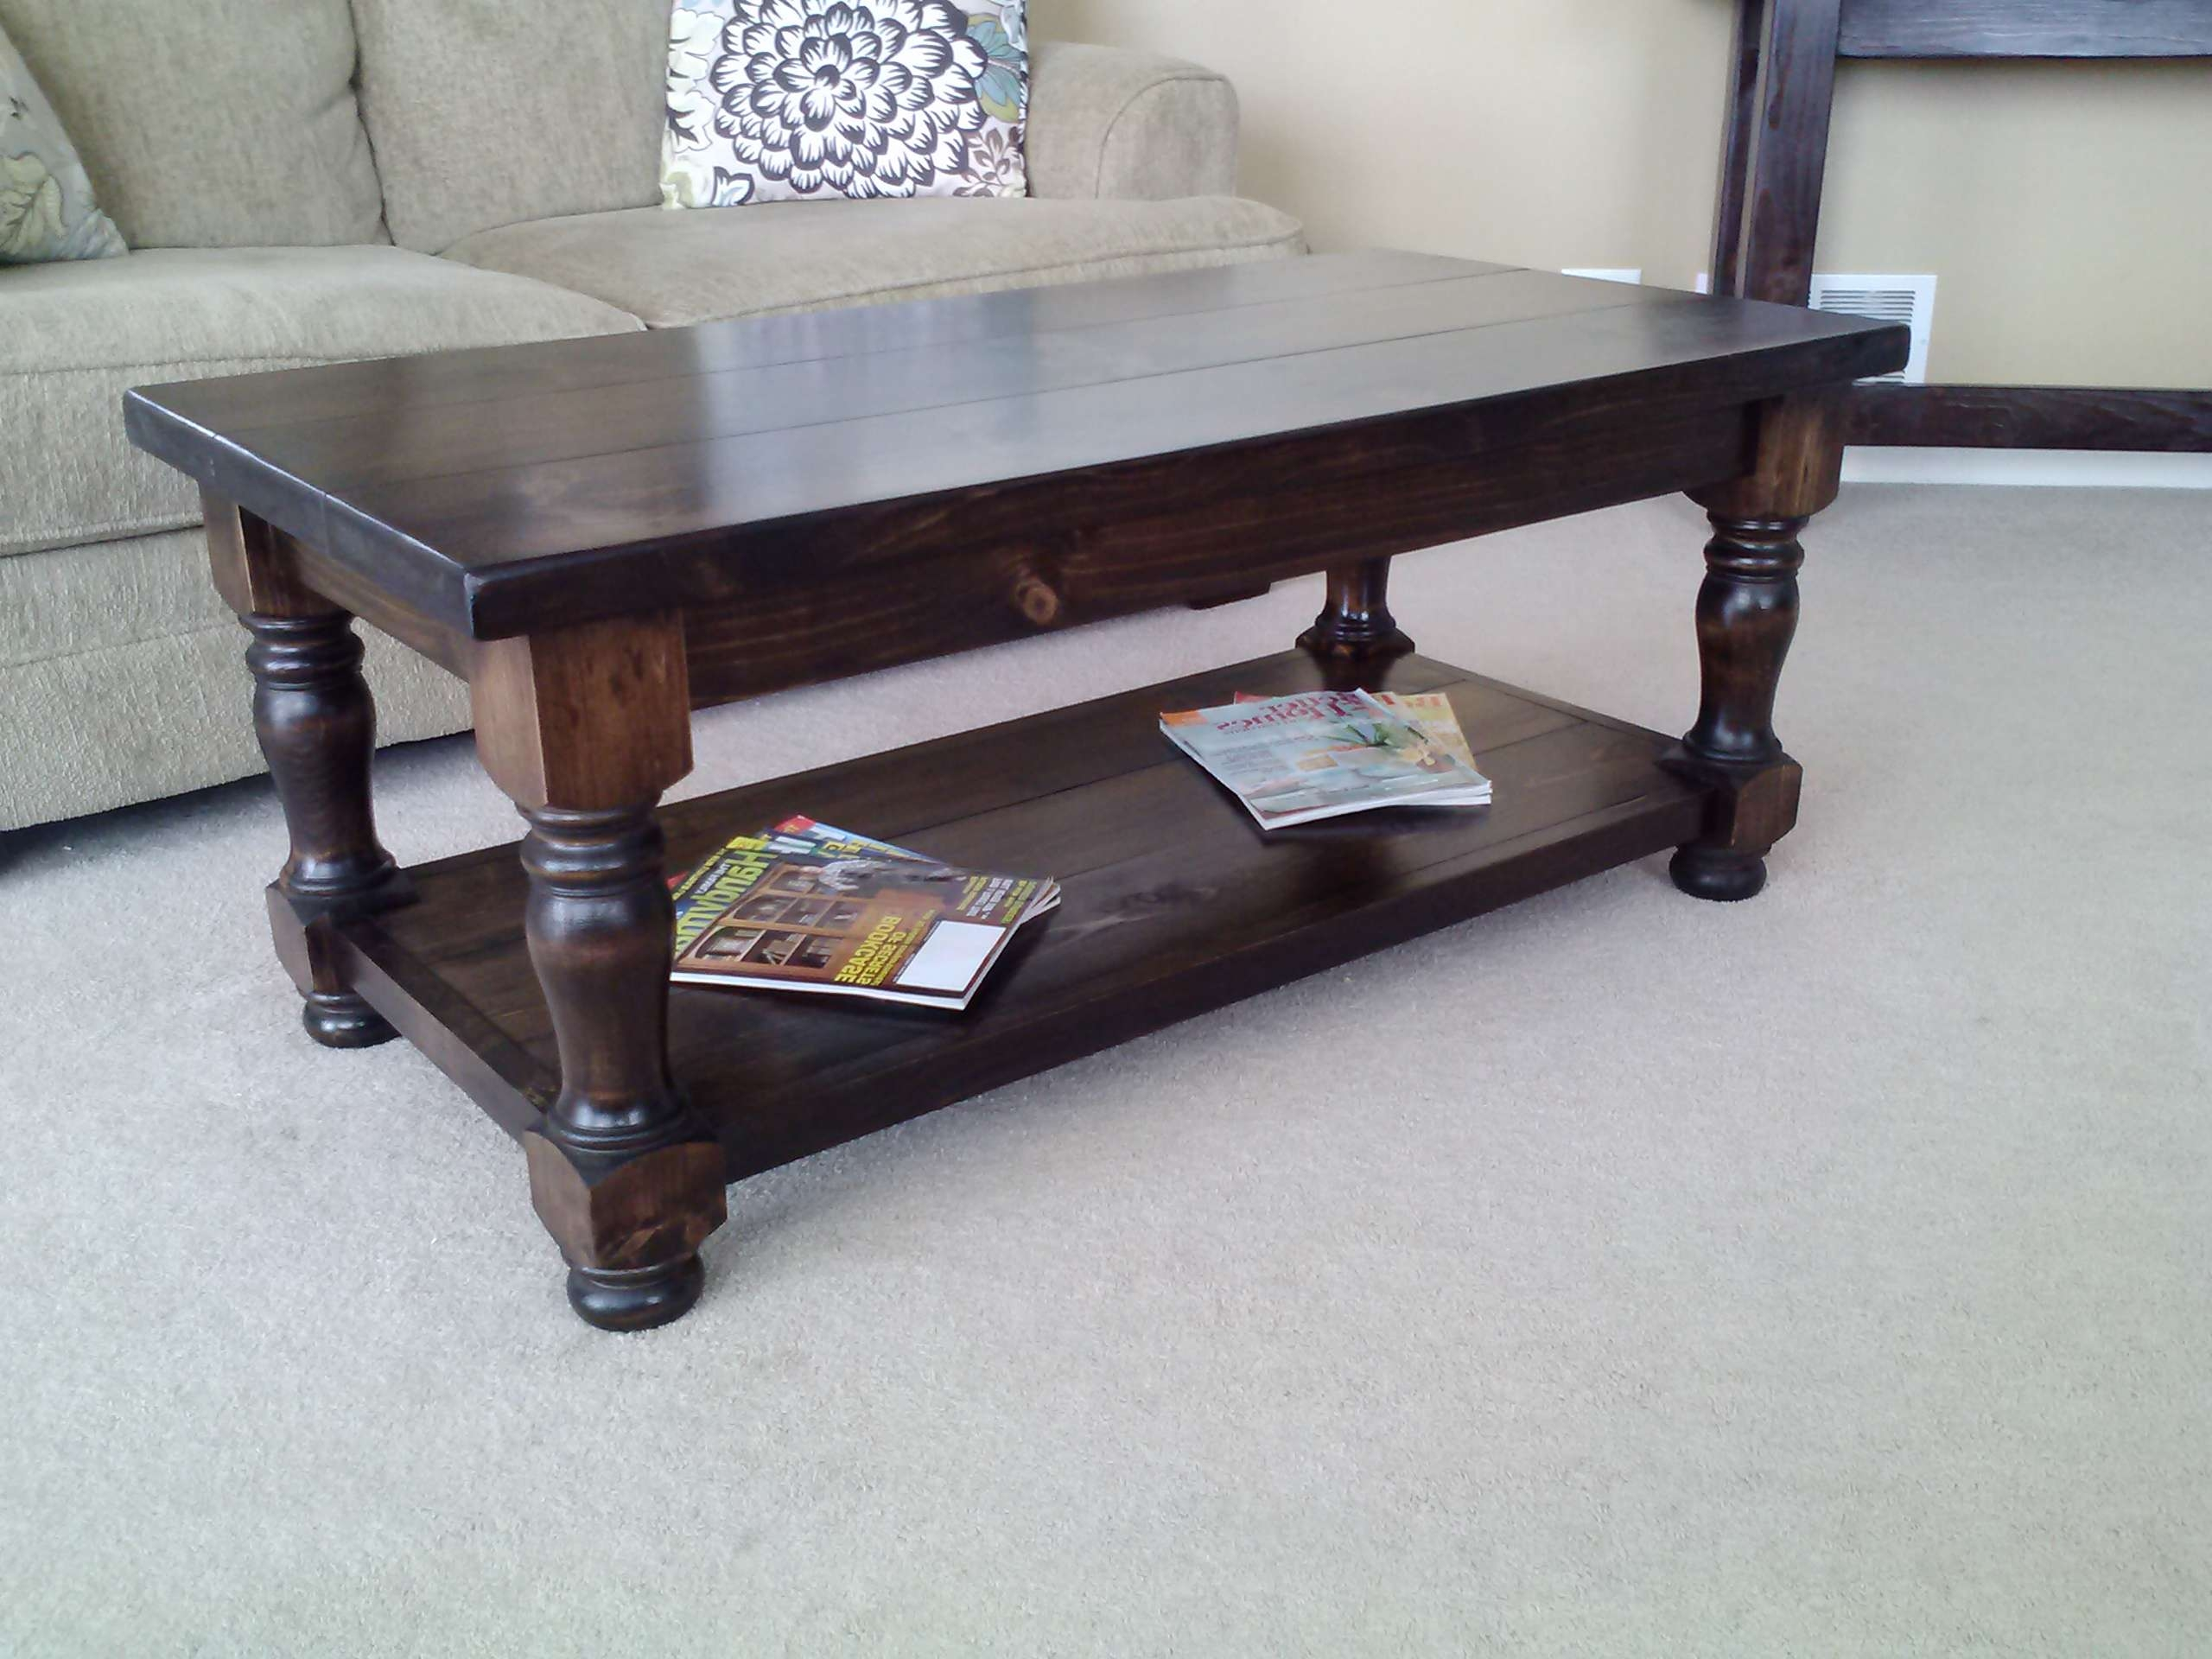 Latest Heritage Coffee Tables For Matching Coffee And End Tables Using The Heritage Table Legs (View 5 of 20)